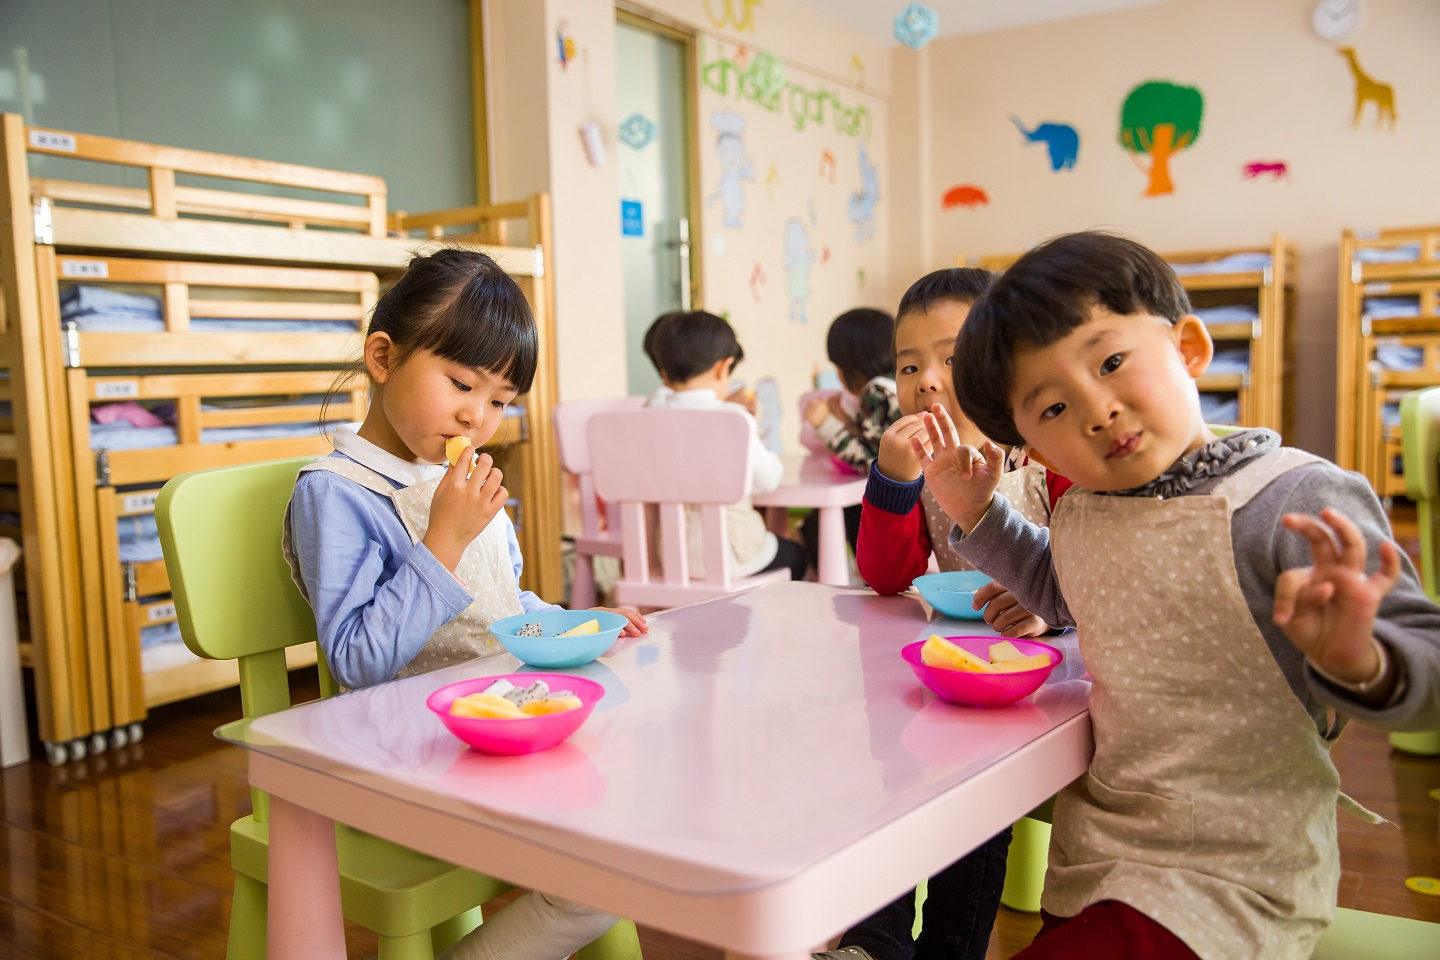 Encouraging better eating habits at school cafeterias